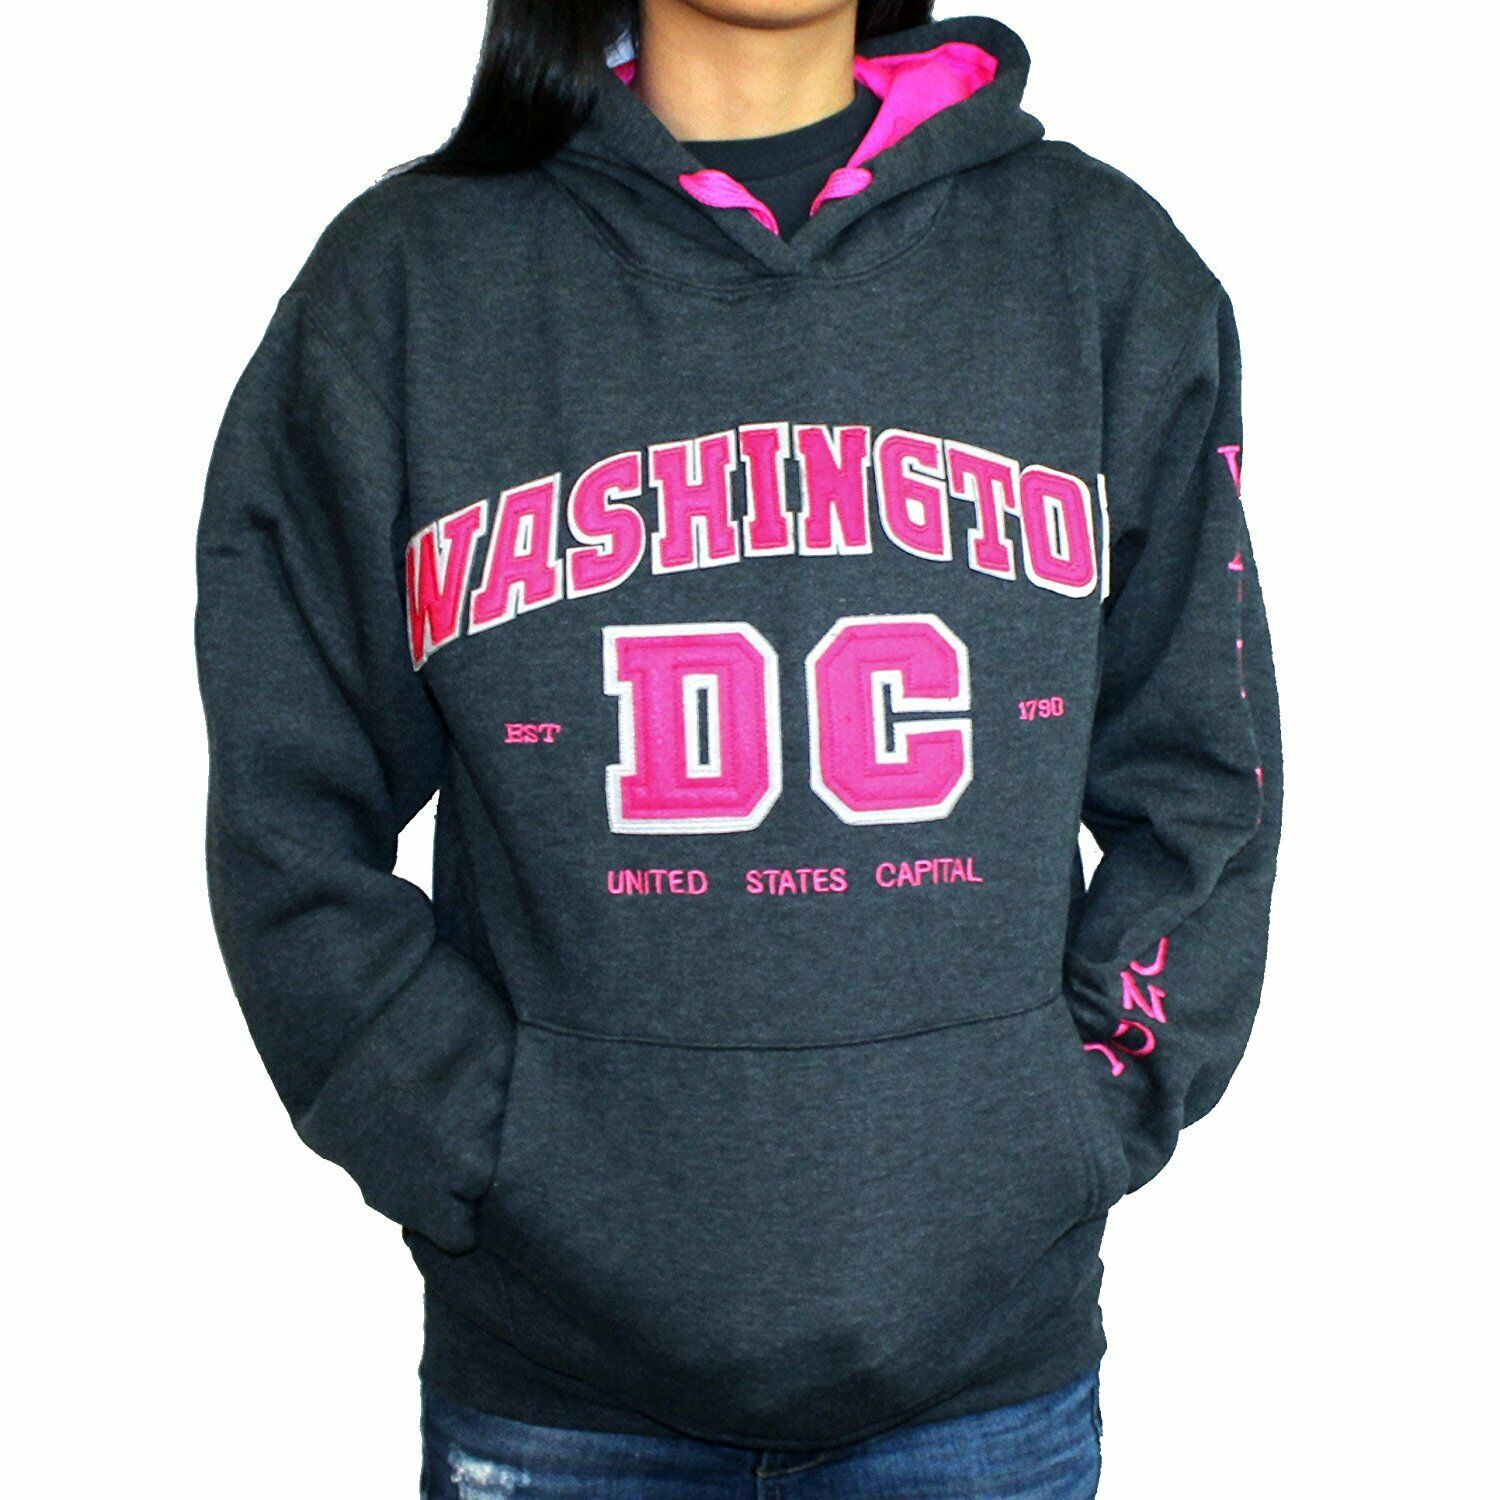 Washington DC Charcoal-Pink Woman Hoodie Sweatshirt Embroidered letters